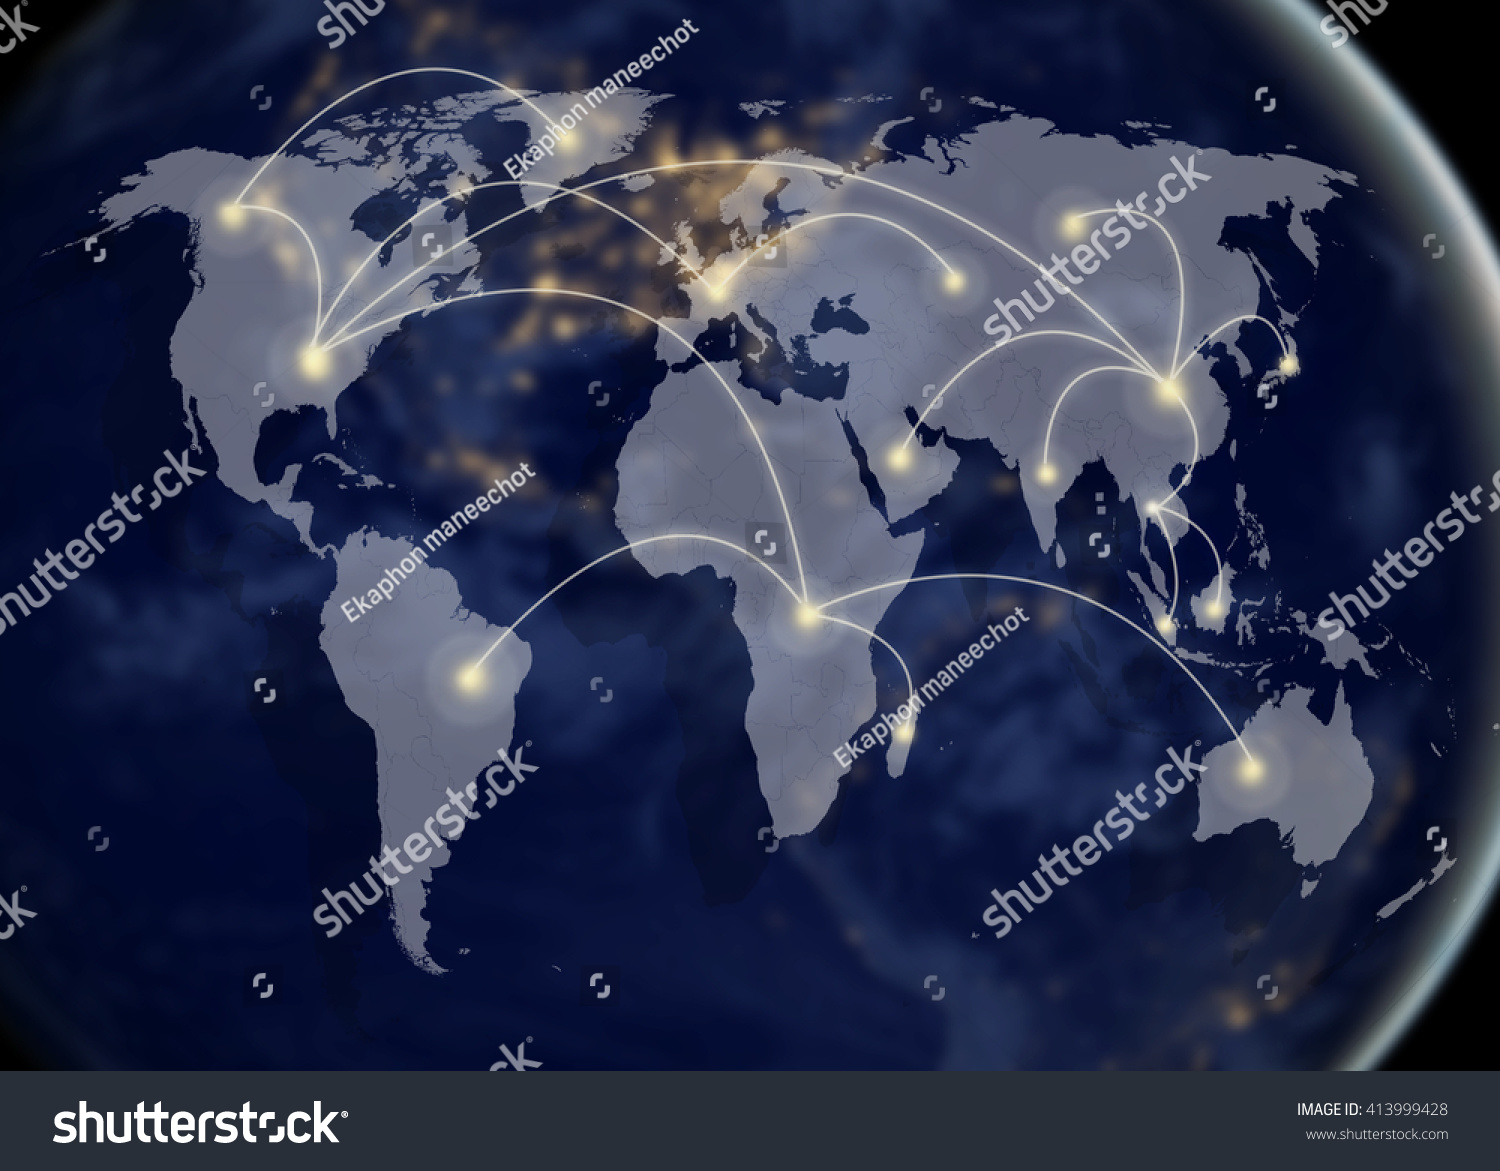 network and world map networking concept Elements of this image furnished by NASA